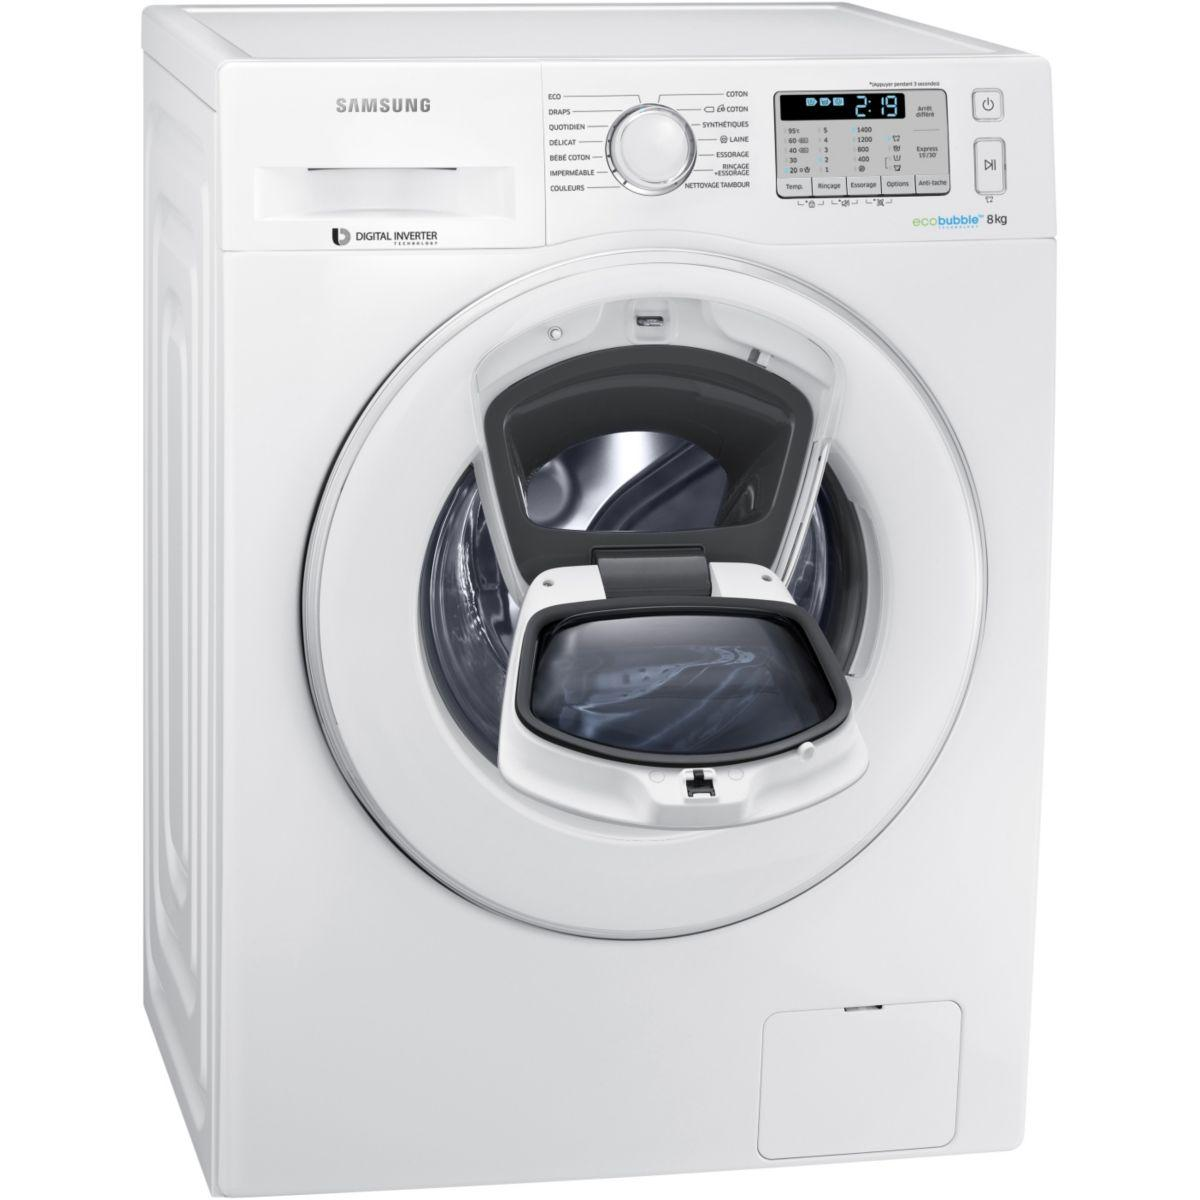 lectrom nager lave linge frontal samsung add wash ww80k5413ww. Black Bedroom Furniture Sets. Home Design Ideas